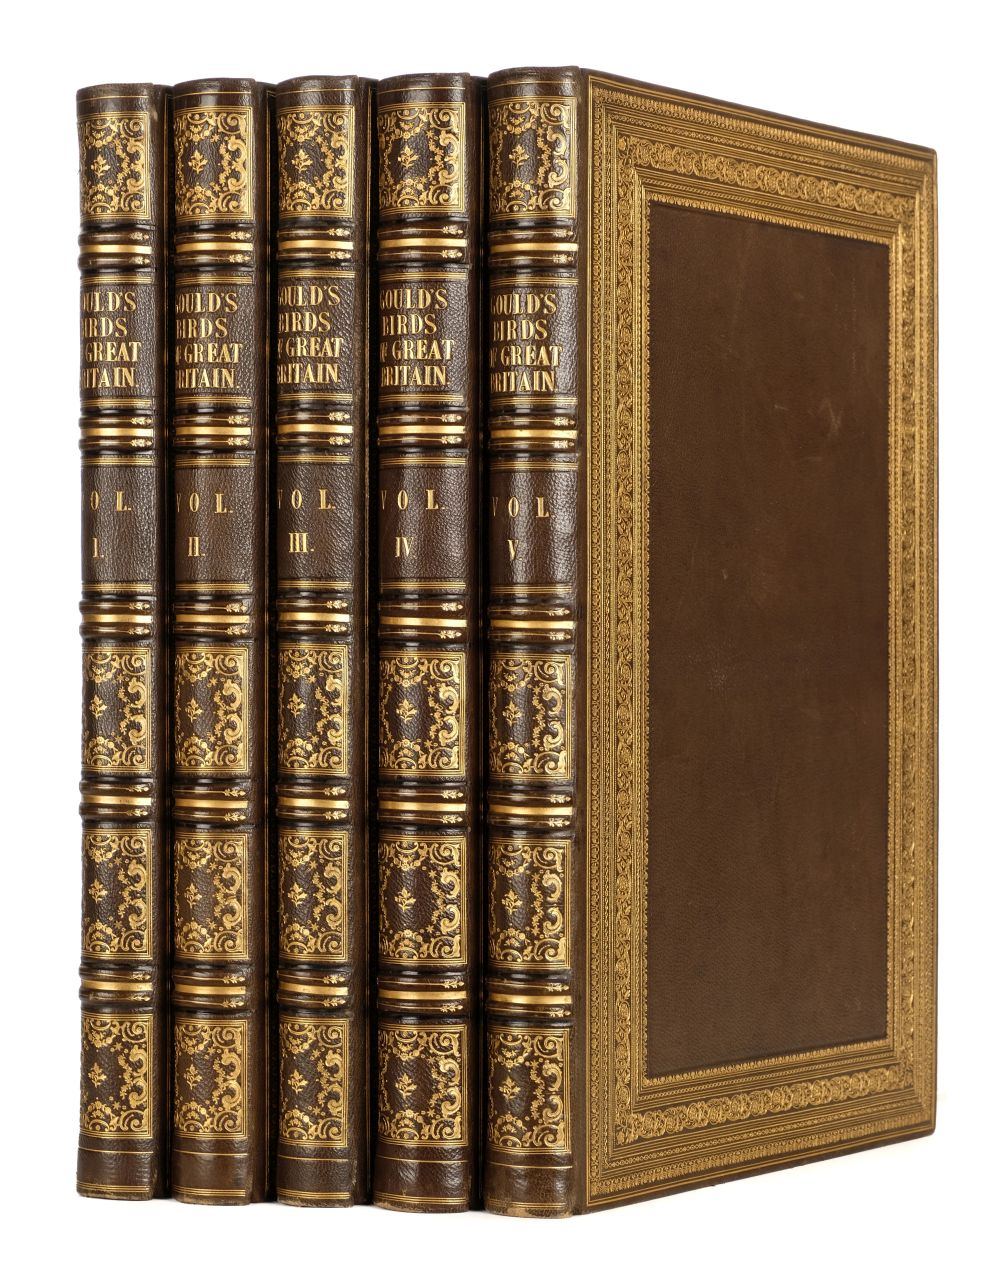 Gould (John). The Birds of Great Britain, 5 volumes, 1st edition, 1862-73